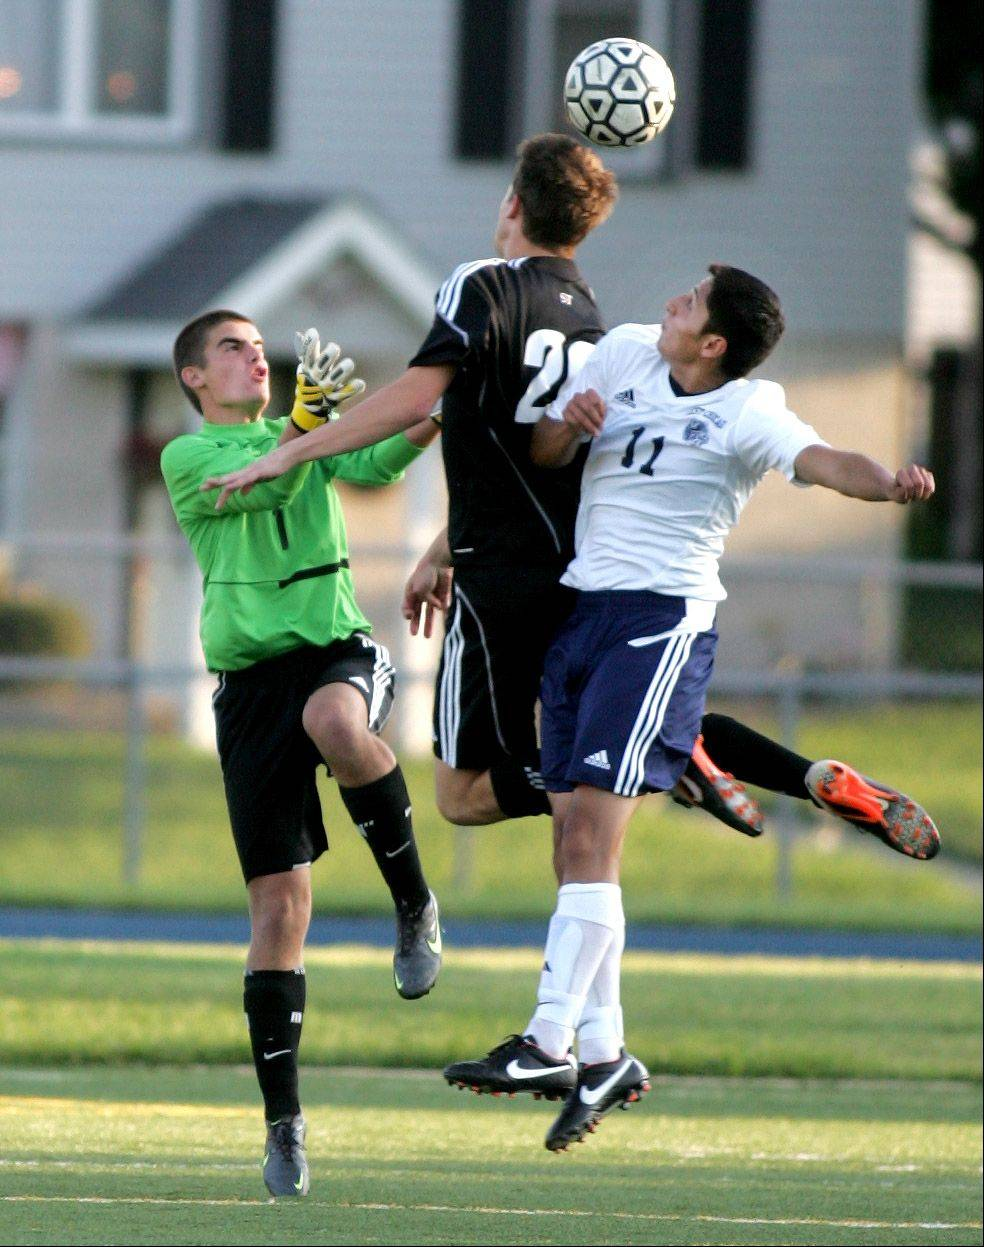 Marshall West of Wheaton Academy, center, gets sandwiched between West Chicago goalkeeper Paolino Mansera, left, and Steven Porcayo in boys soccer action Tuesday.